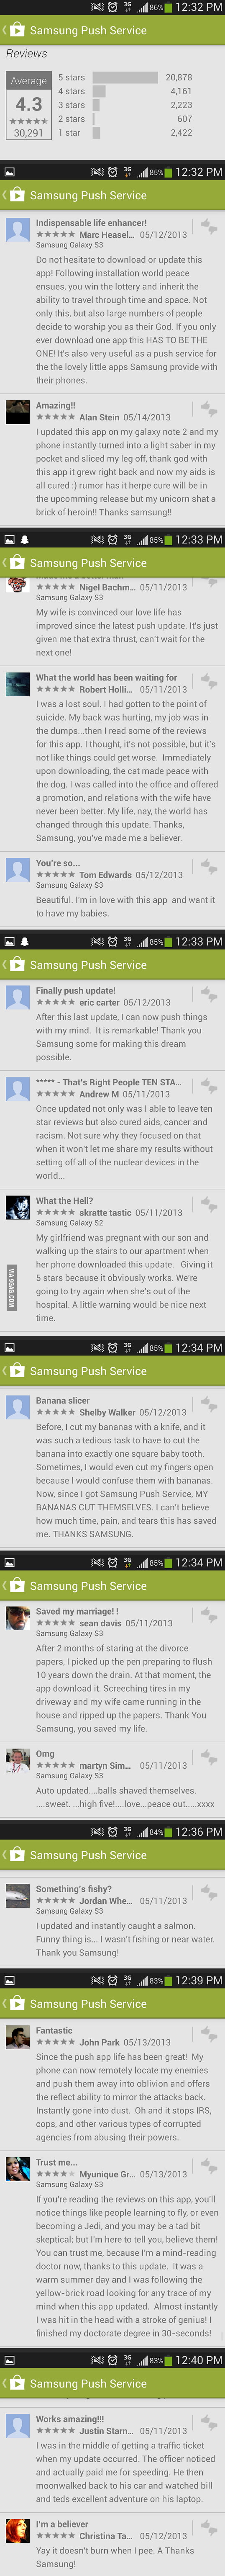 Reviews for Samsung Push Service App.